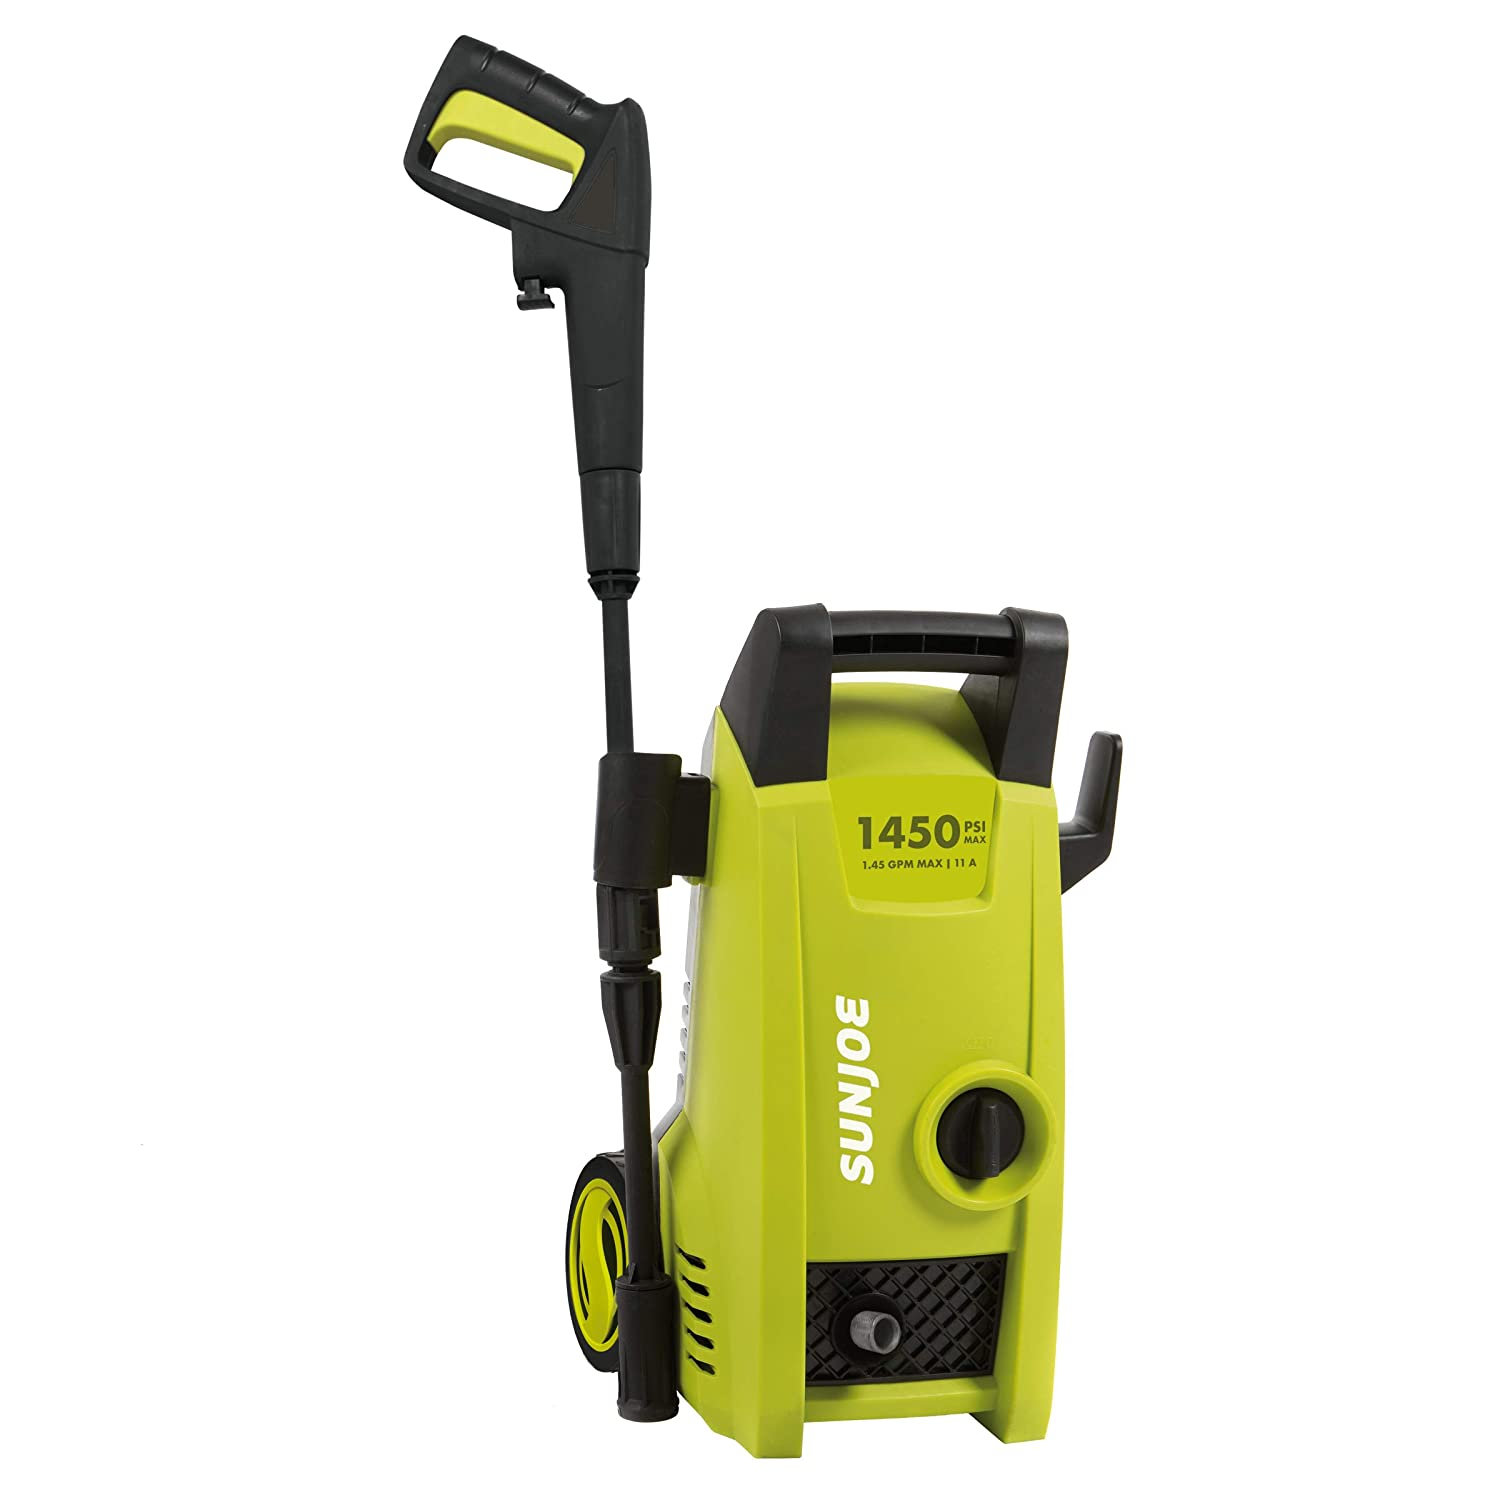 Top 10 Best Pressure Washers Reviews in 2020 6